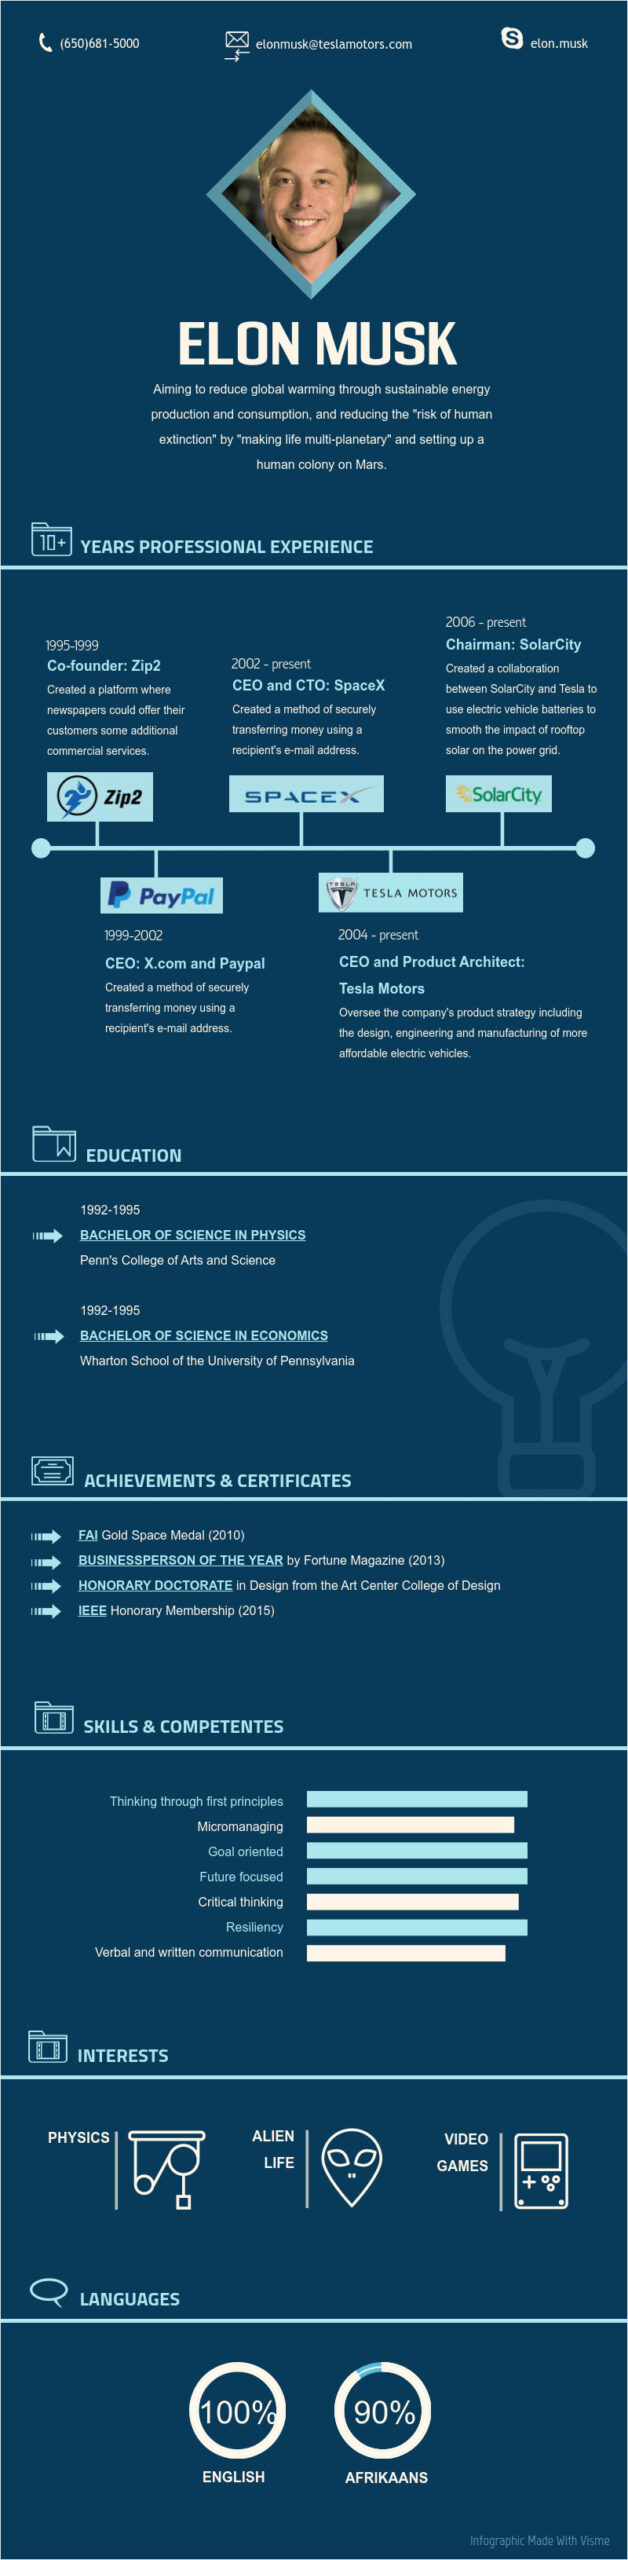 to create your own visual resume easy free business insider elon musk eon after can you Resume Business Insider Elon Musk Resume